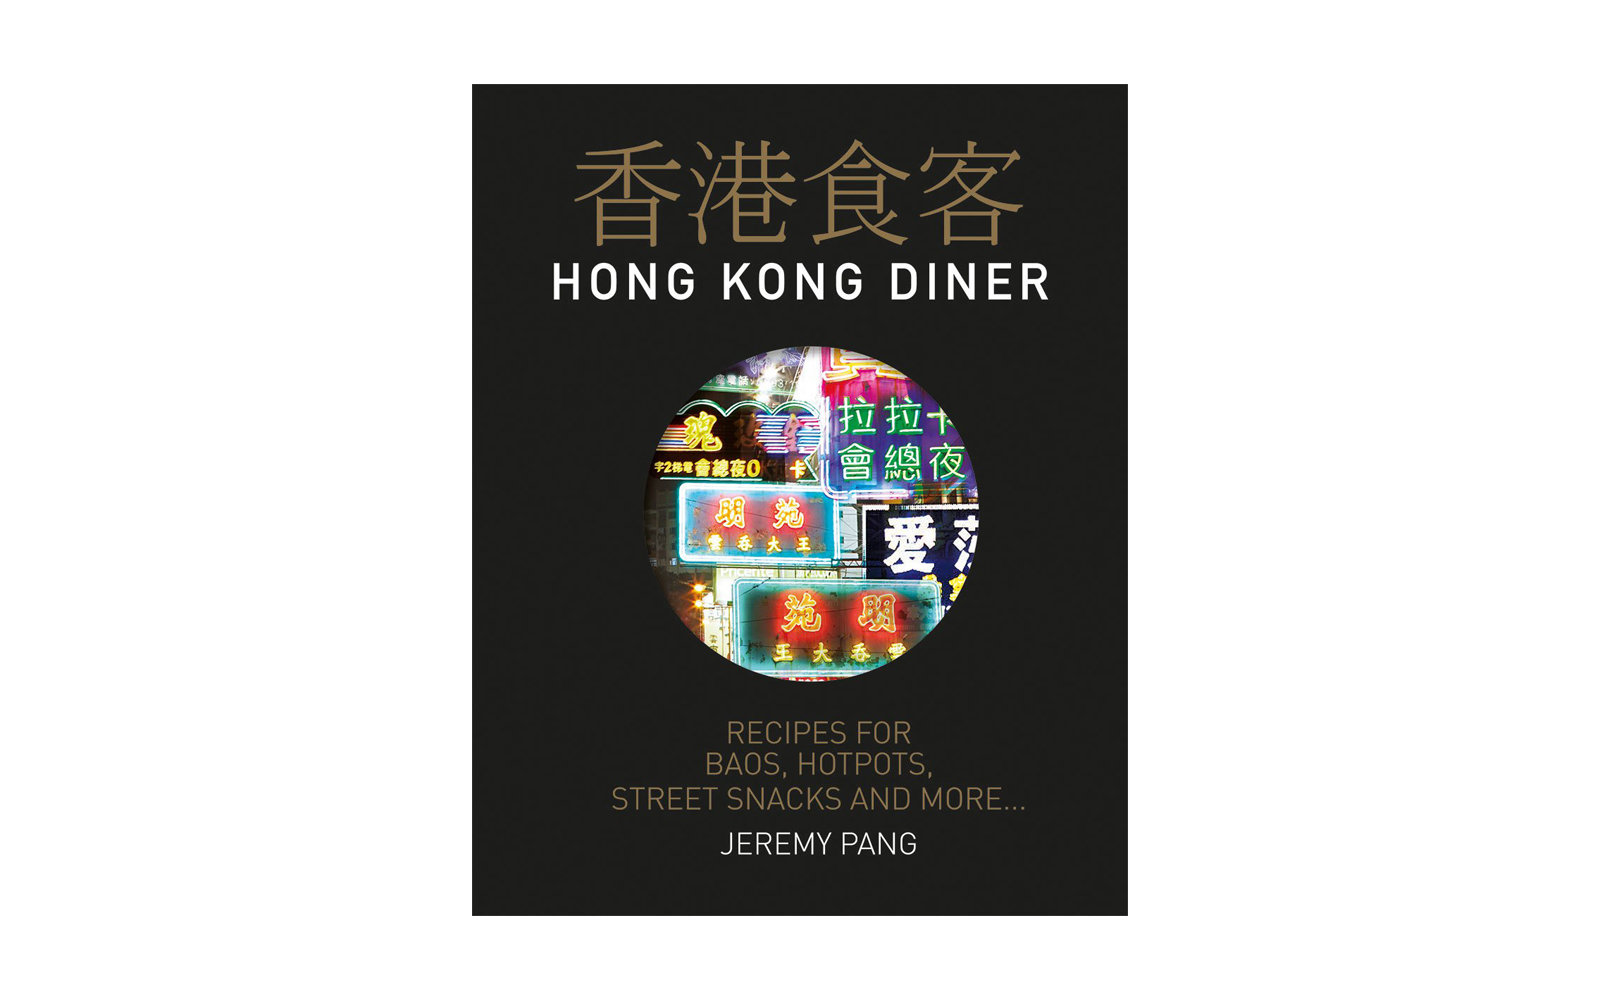 Hong Kong Diner, by Jeremy Pang